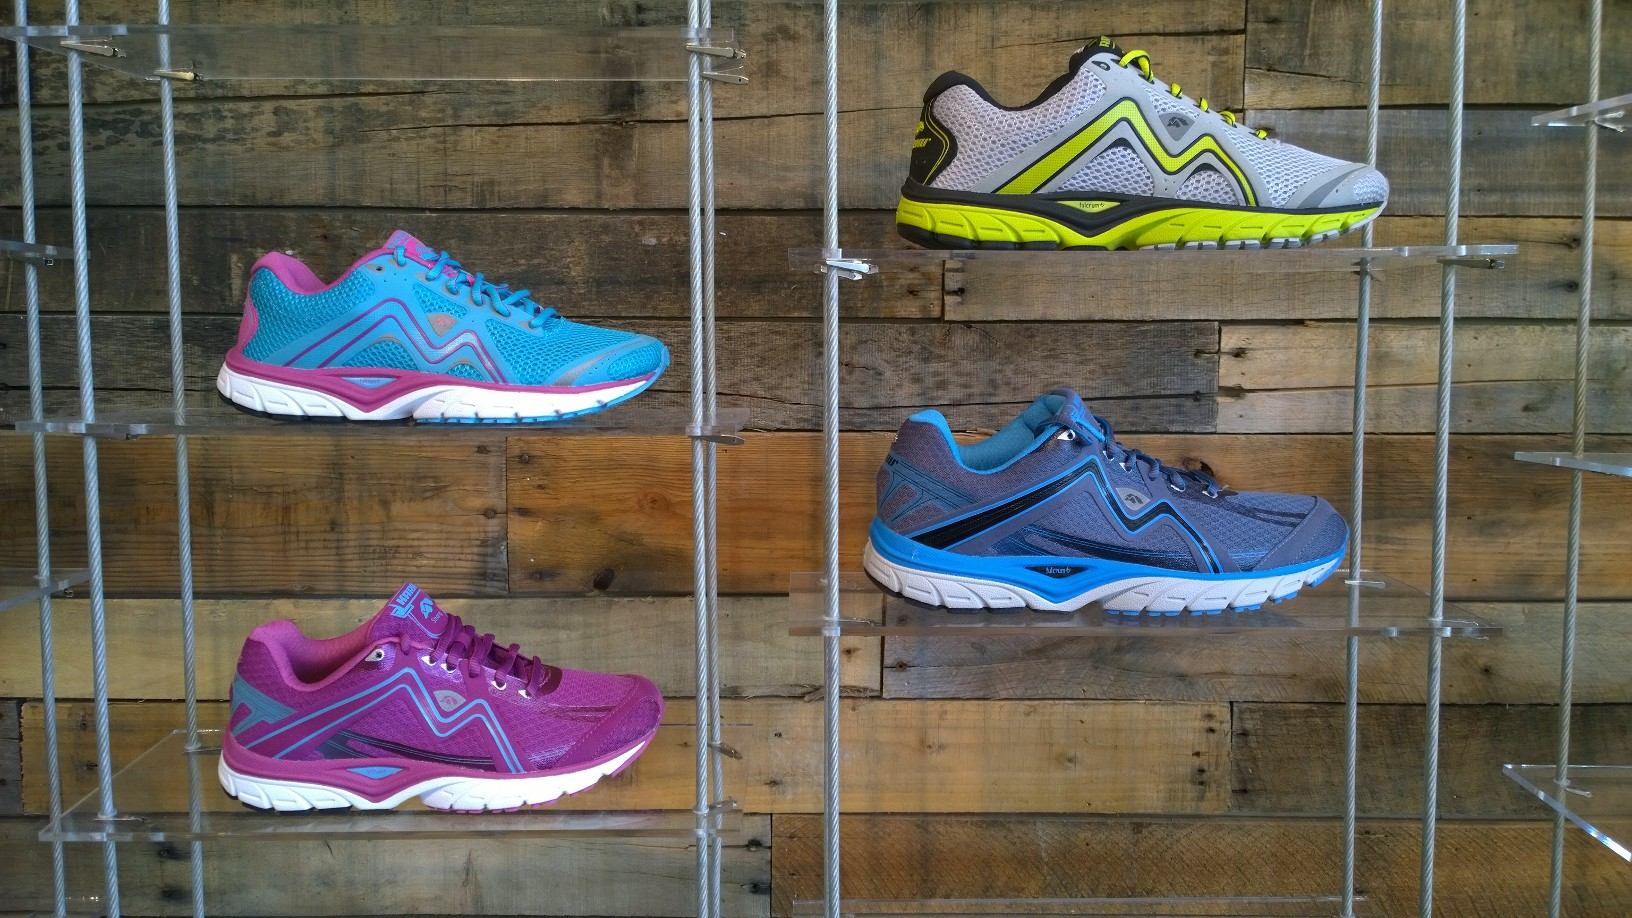 New Karhu Training Shoes: Fast 5 and Strong 5